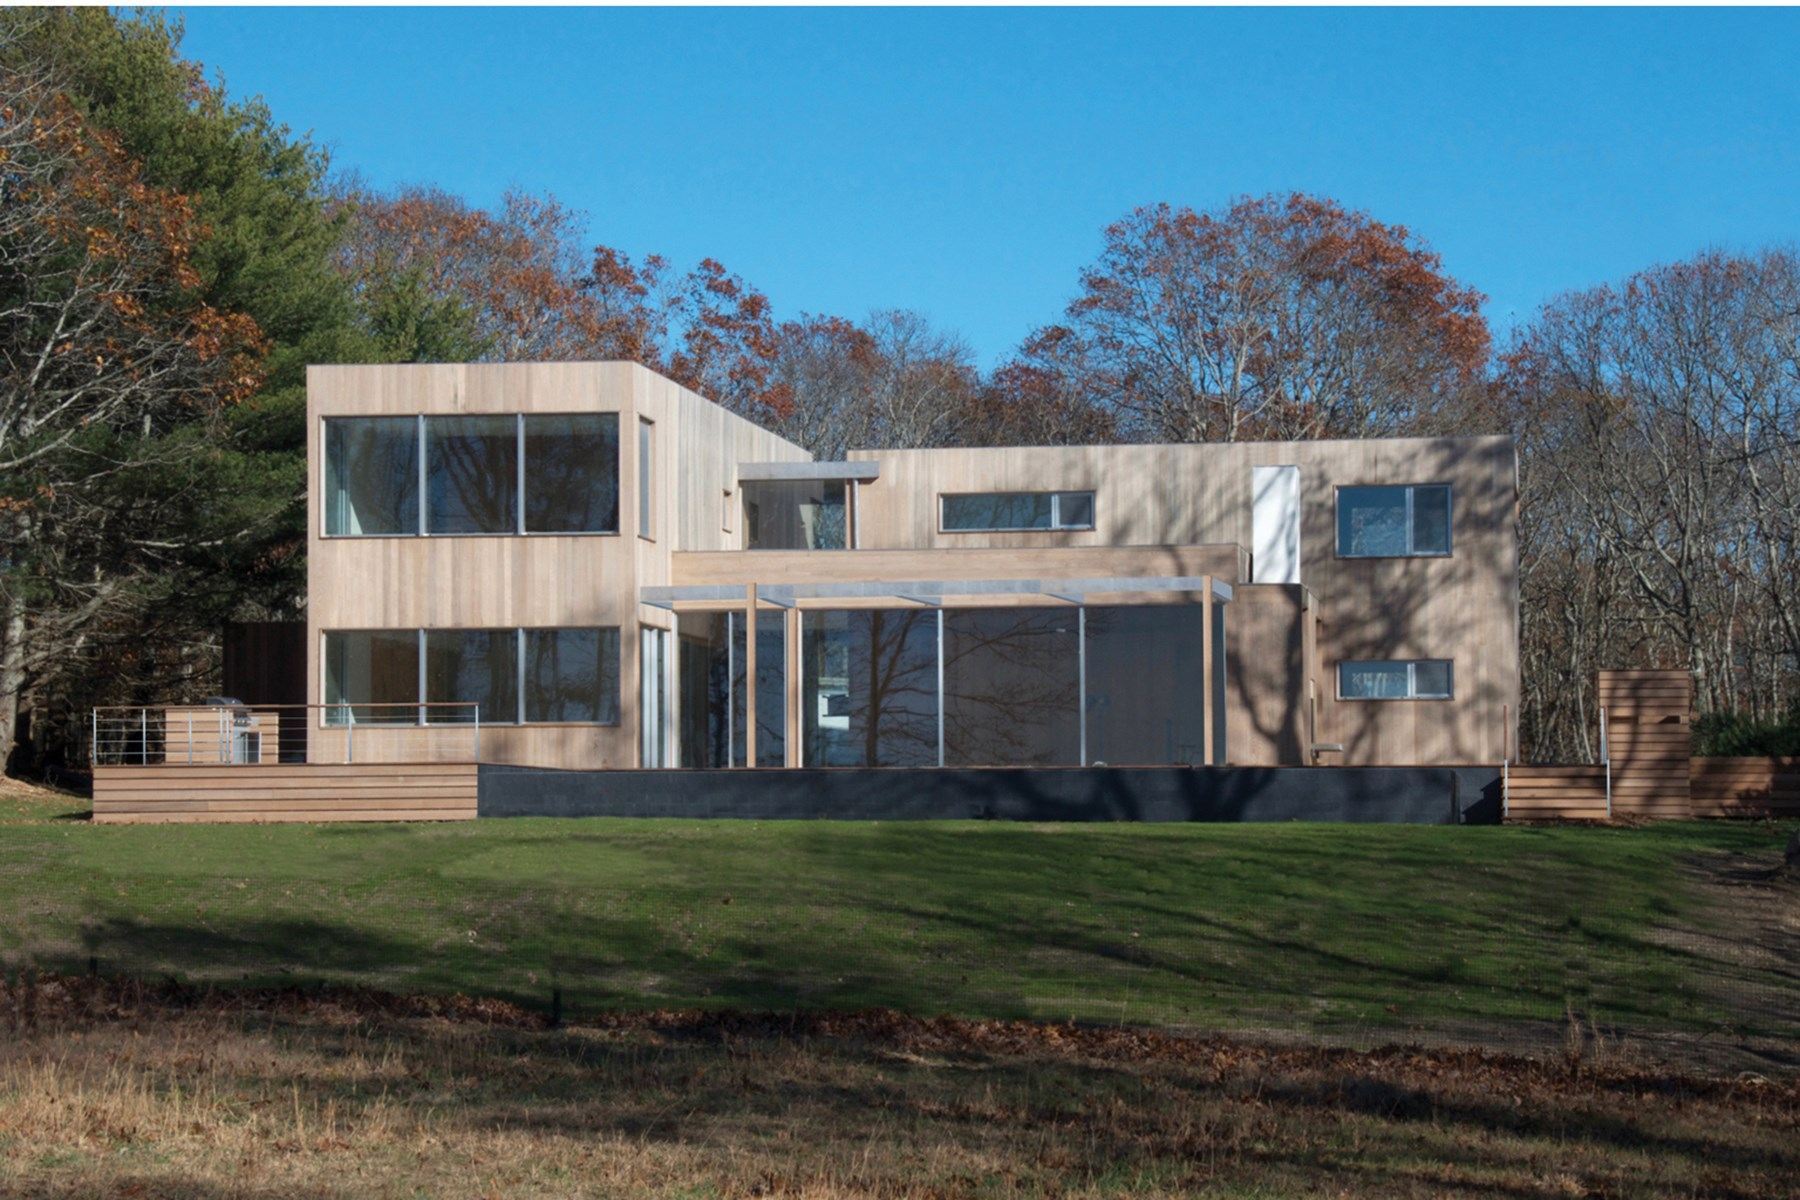 Maison unifamiliale pour l Vente à New Modern Construction in Amagansett 22 Scrimshaw Lane Amagansett, New York 11930 États-Unis